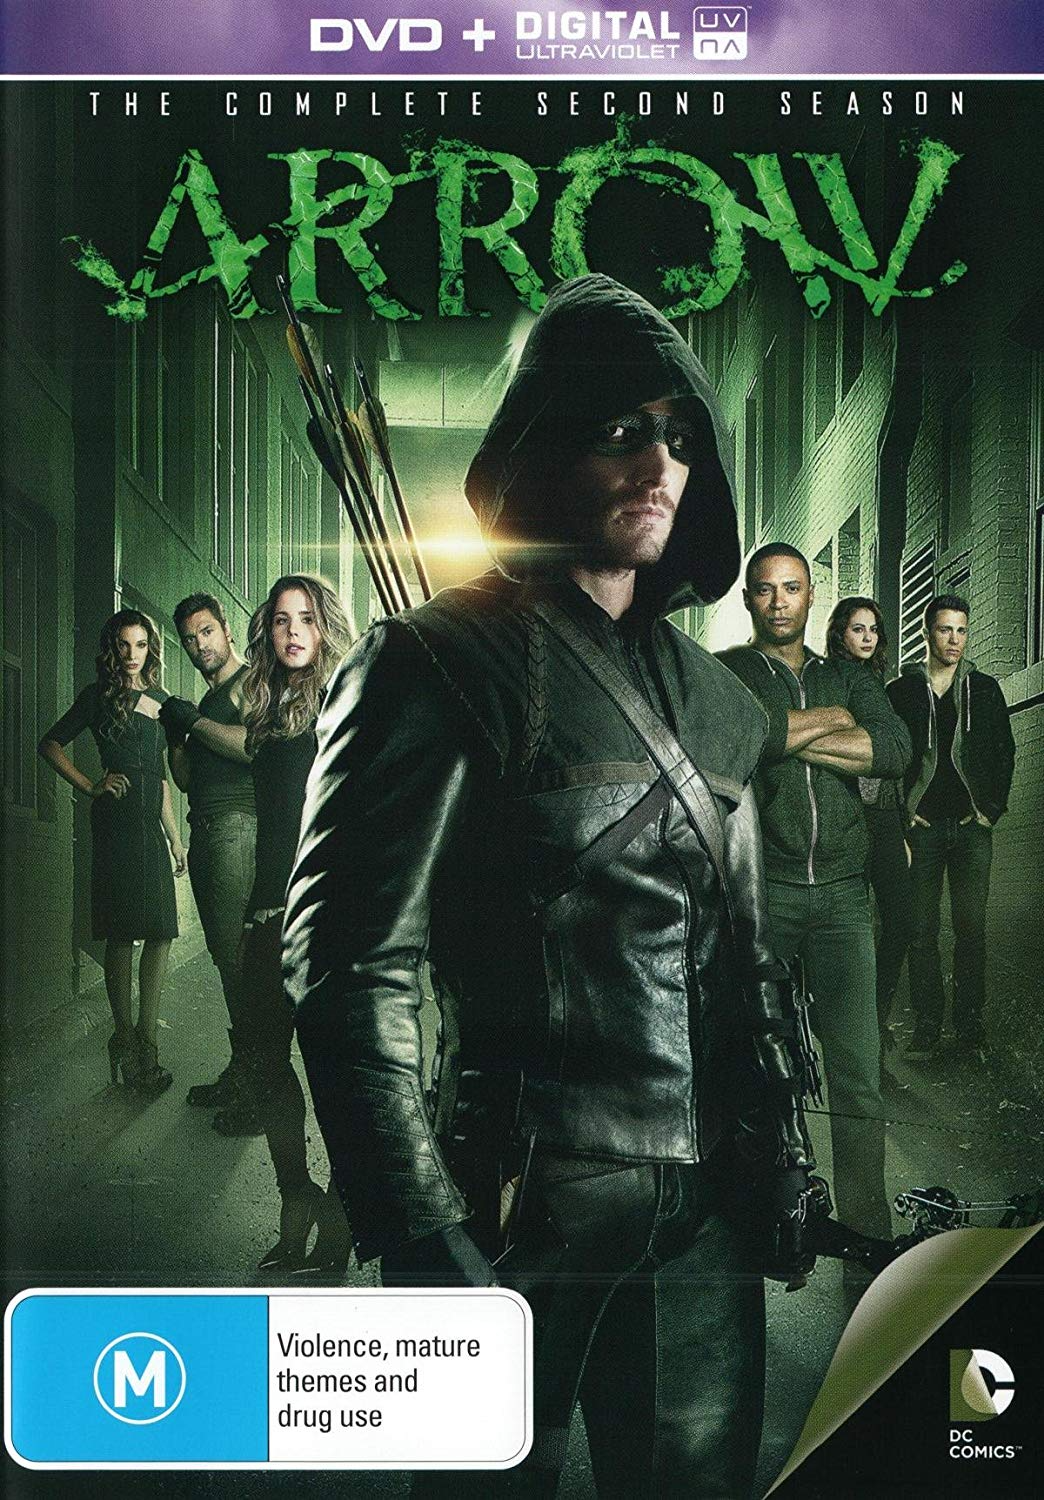 Arrow - The Complete Second Season region 4 cover.png